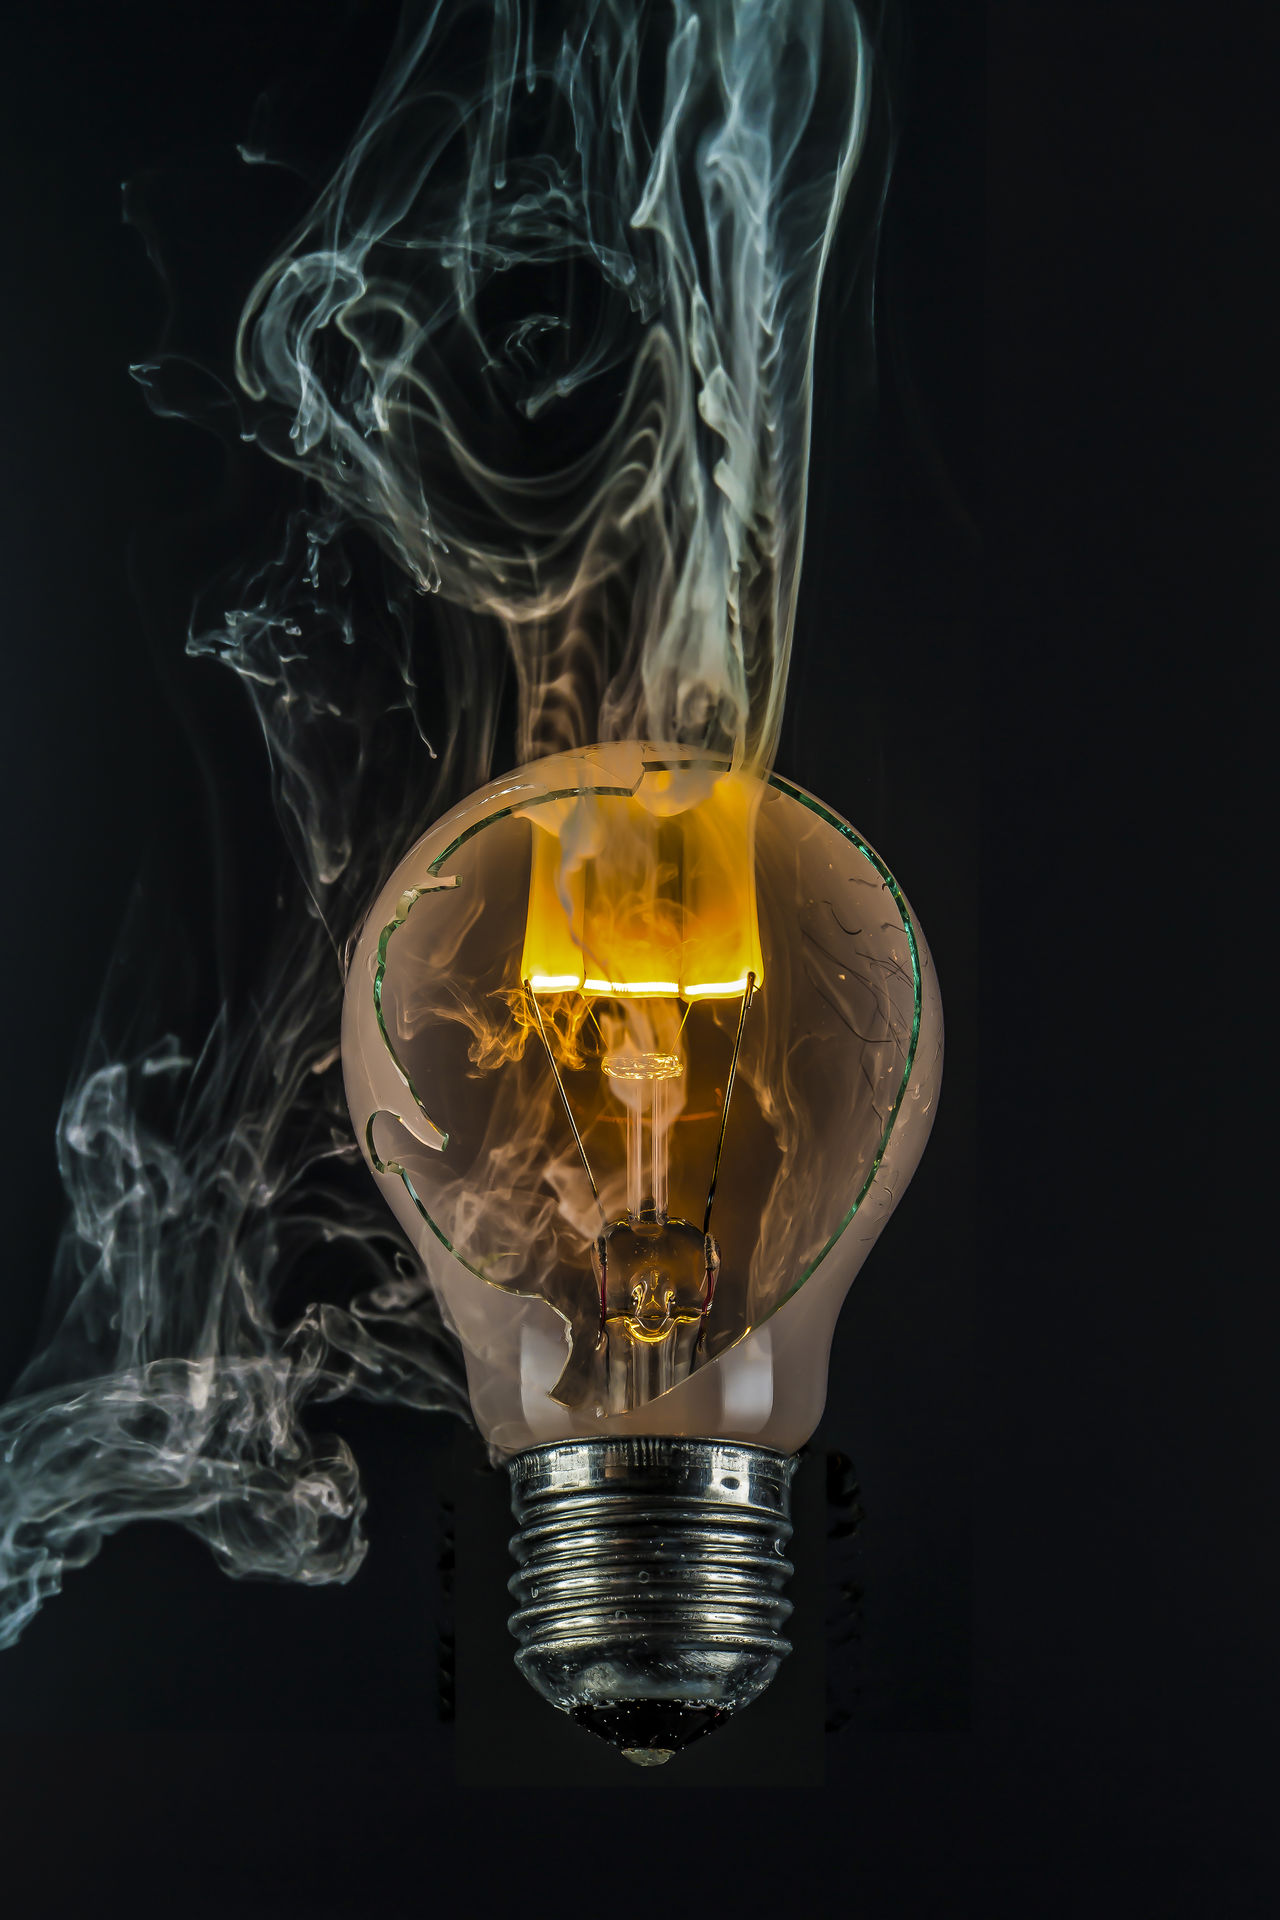 Art ArtWork Black Background Broken Glass Damage Electricity  Energy Experiment Explosion Filament Flashlight Glimmering Lamp Socket Light Light Bulb Light Source Orange Color Physik Smoke Smoke - Physical Structure